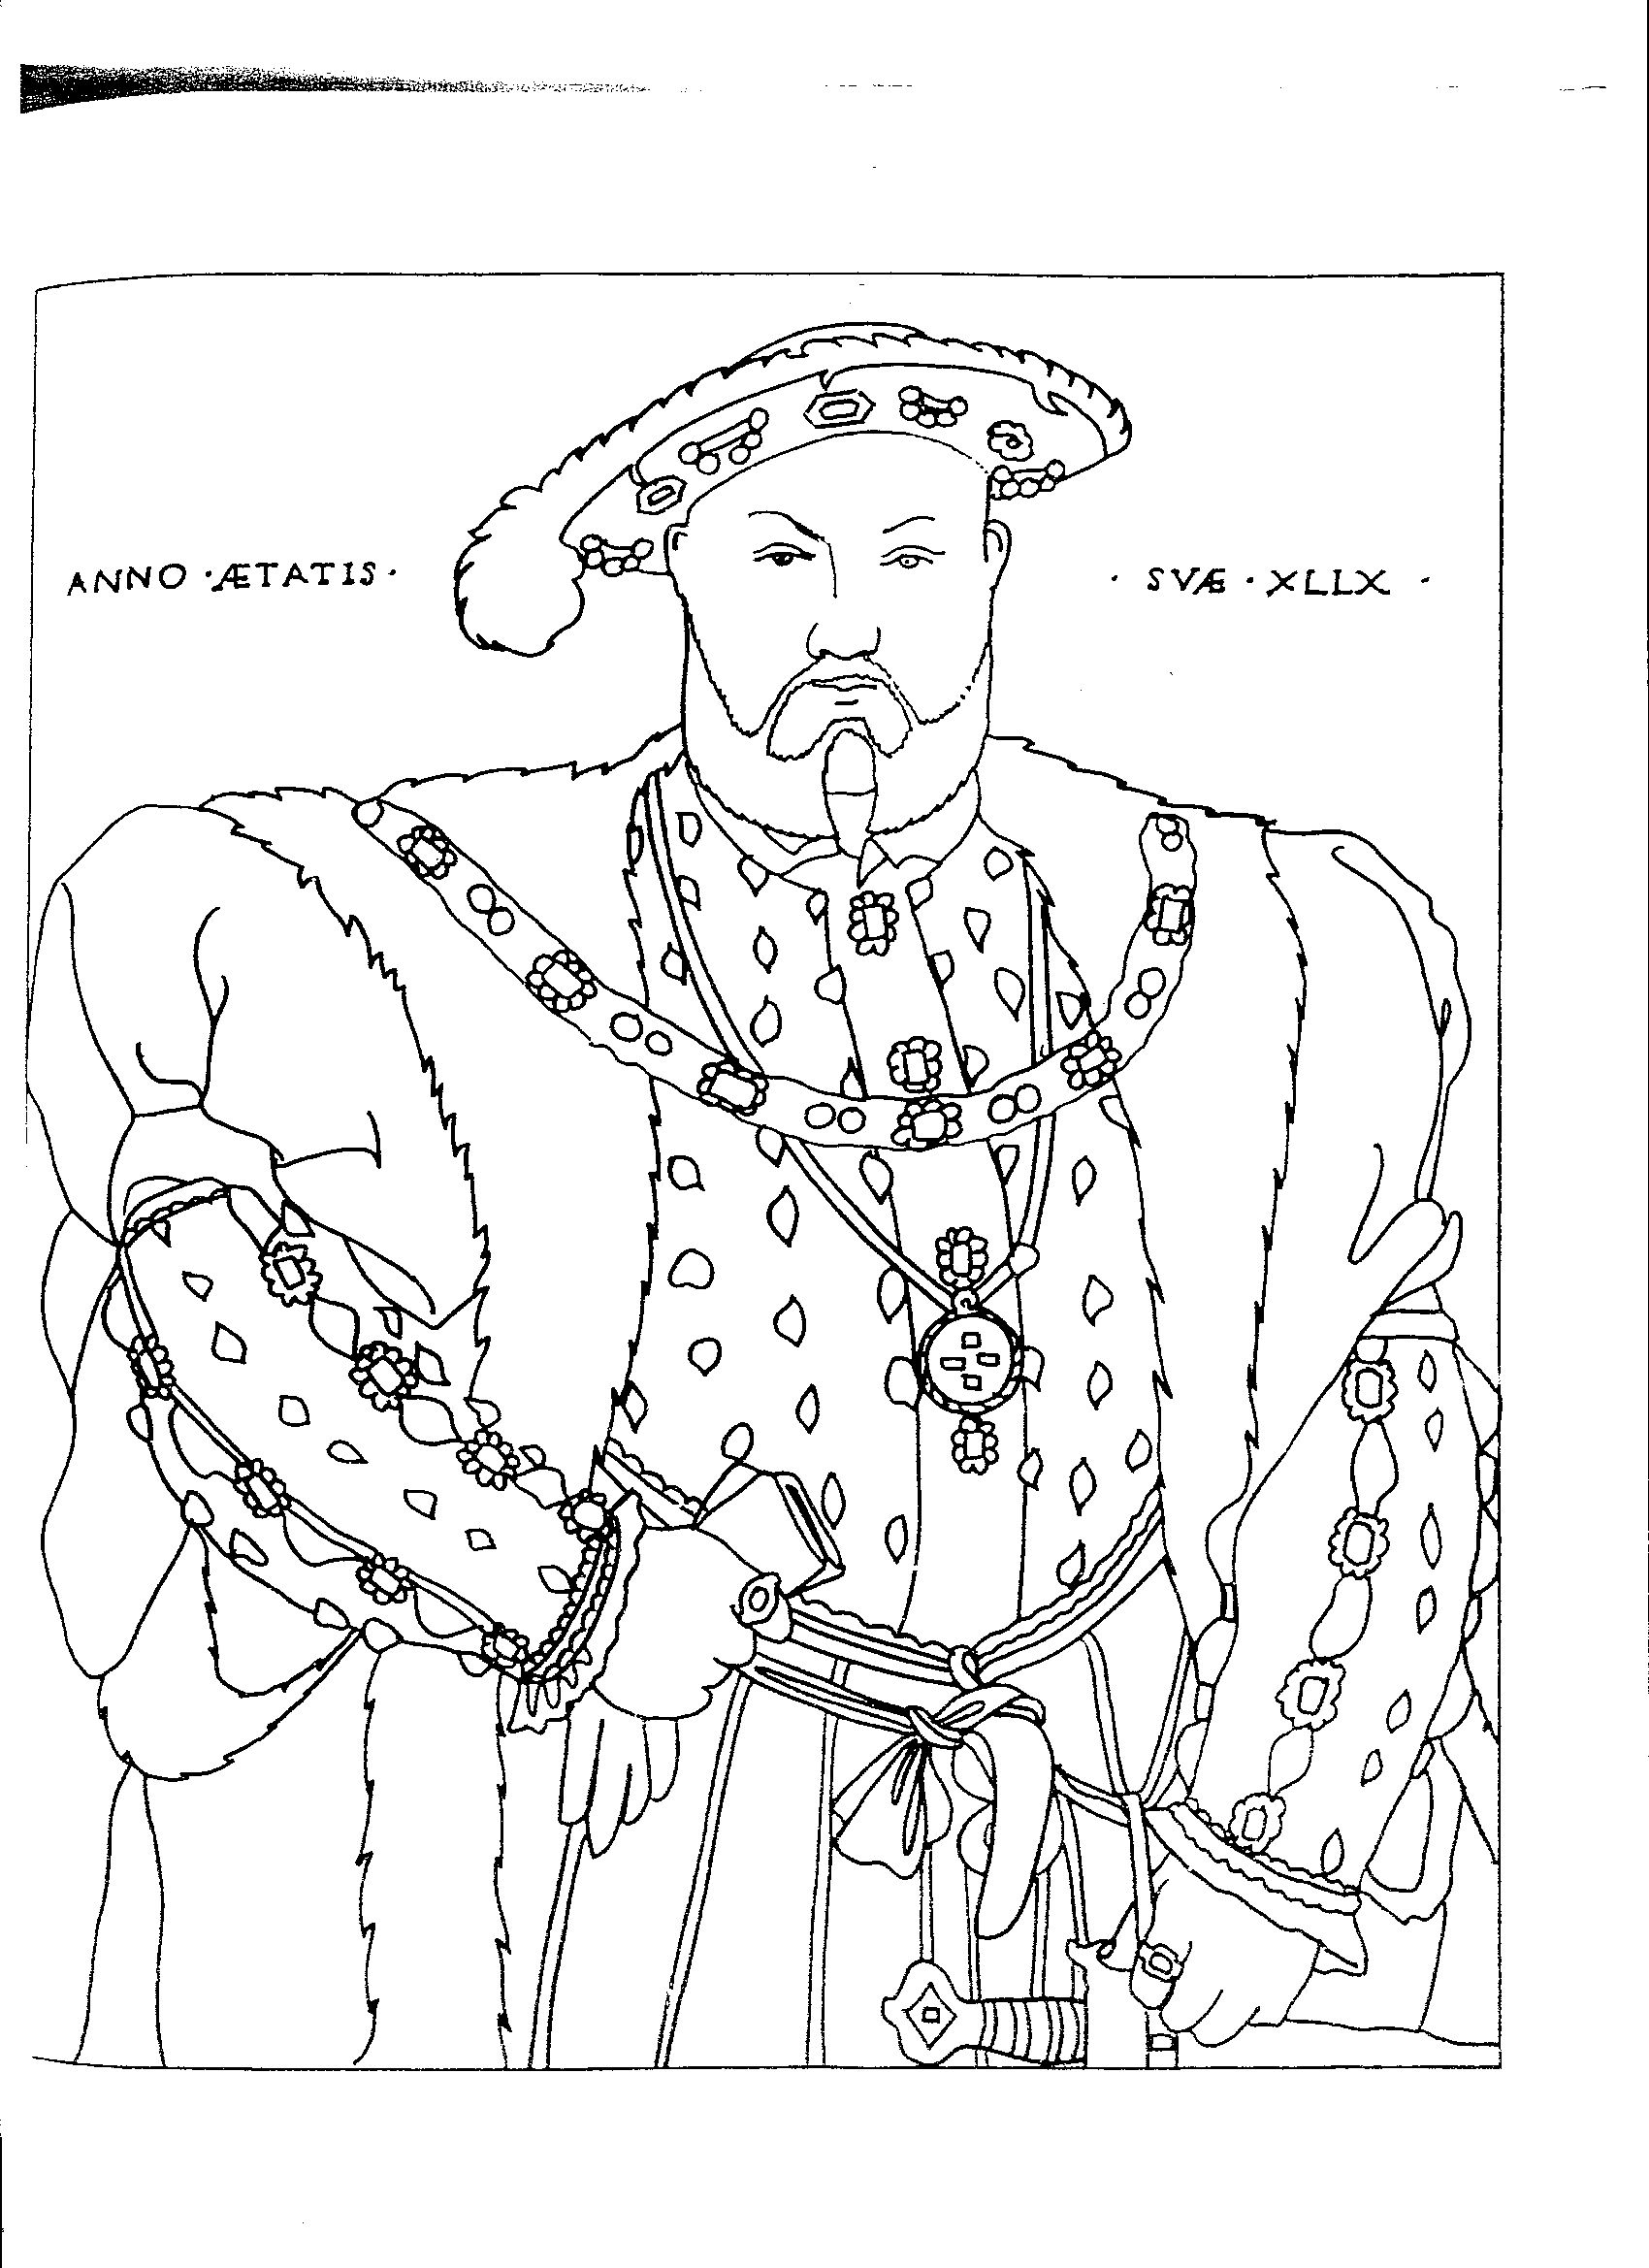 Coloring Pages Renaissance Art Coloring Pages renaissance art coloring pages eassume com eassume